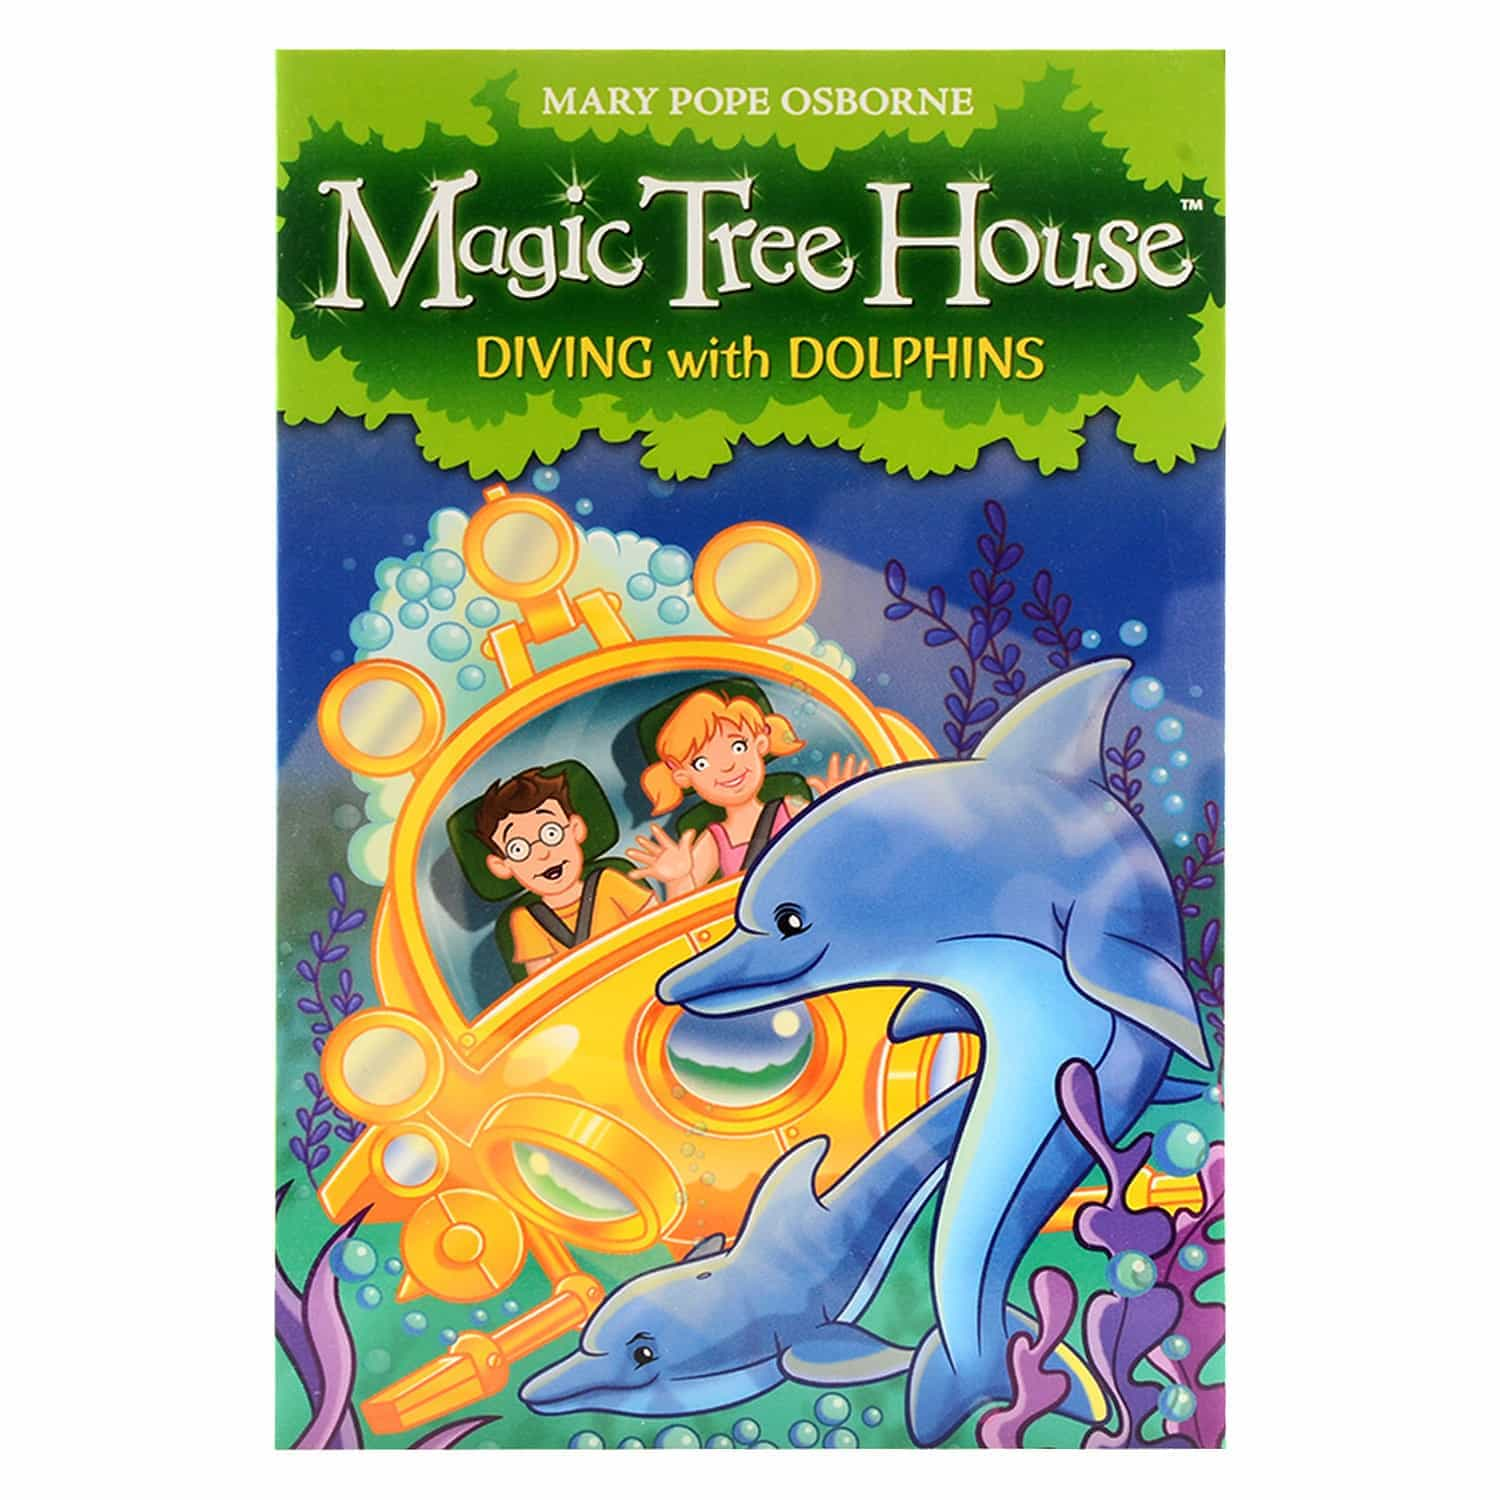 Magic Tree House Series - Diving with Dolphins